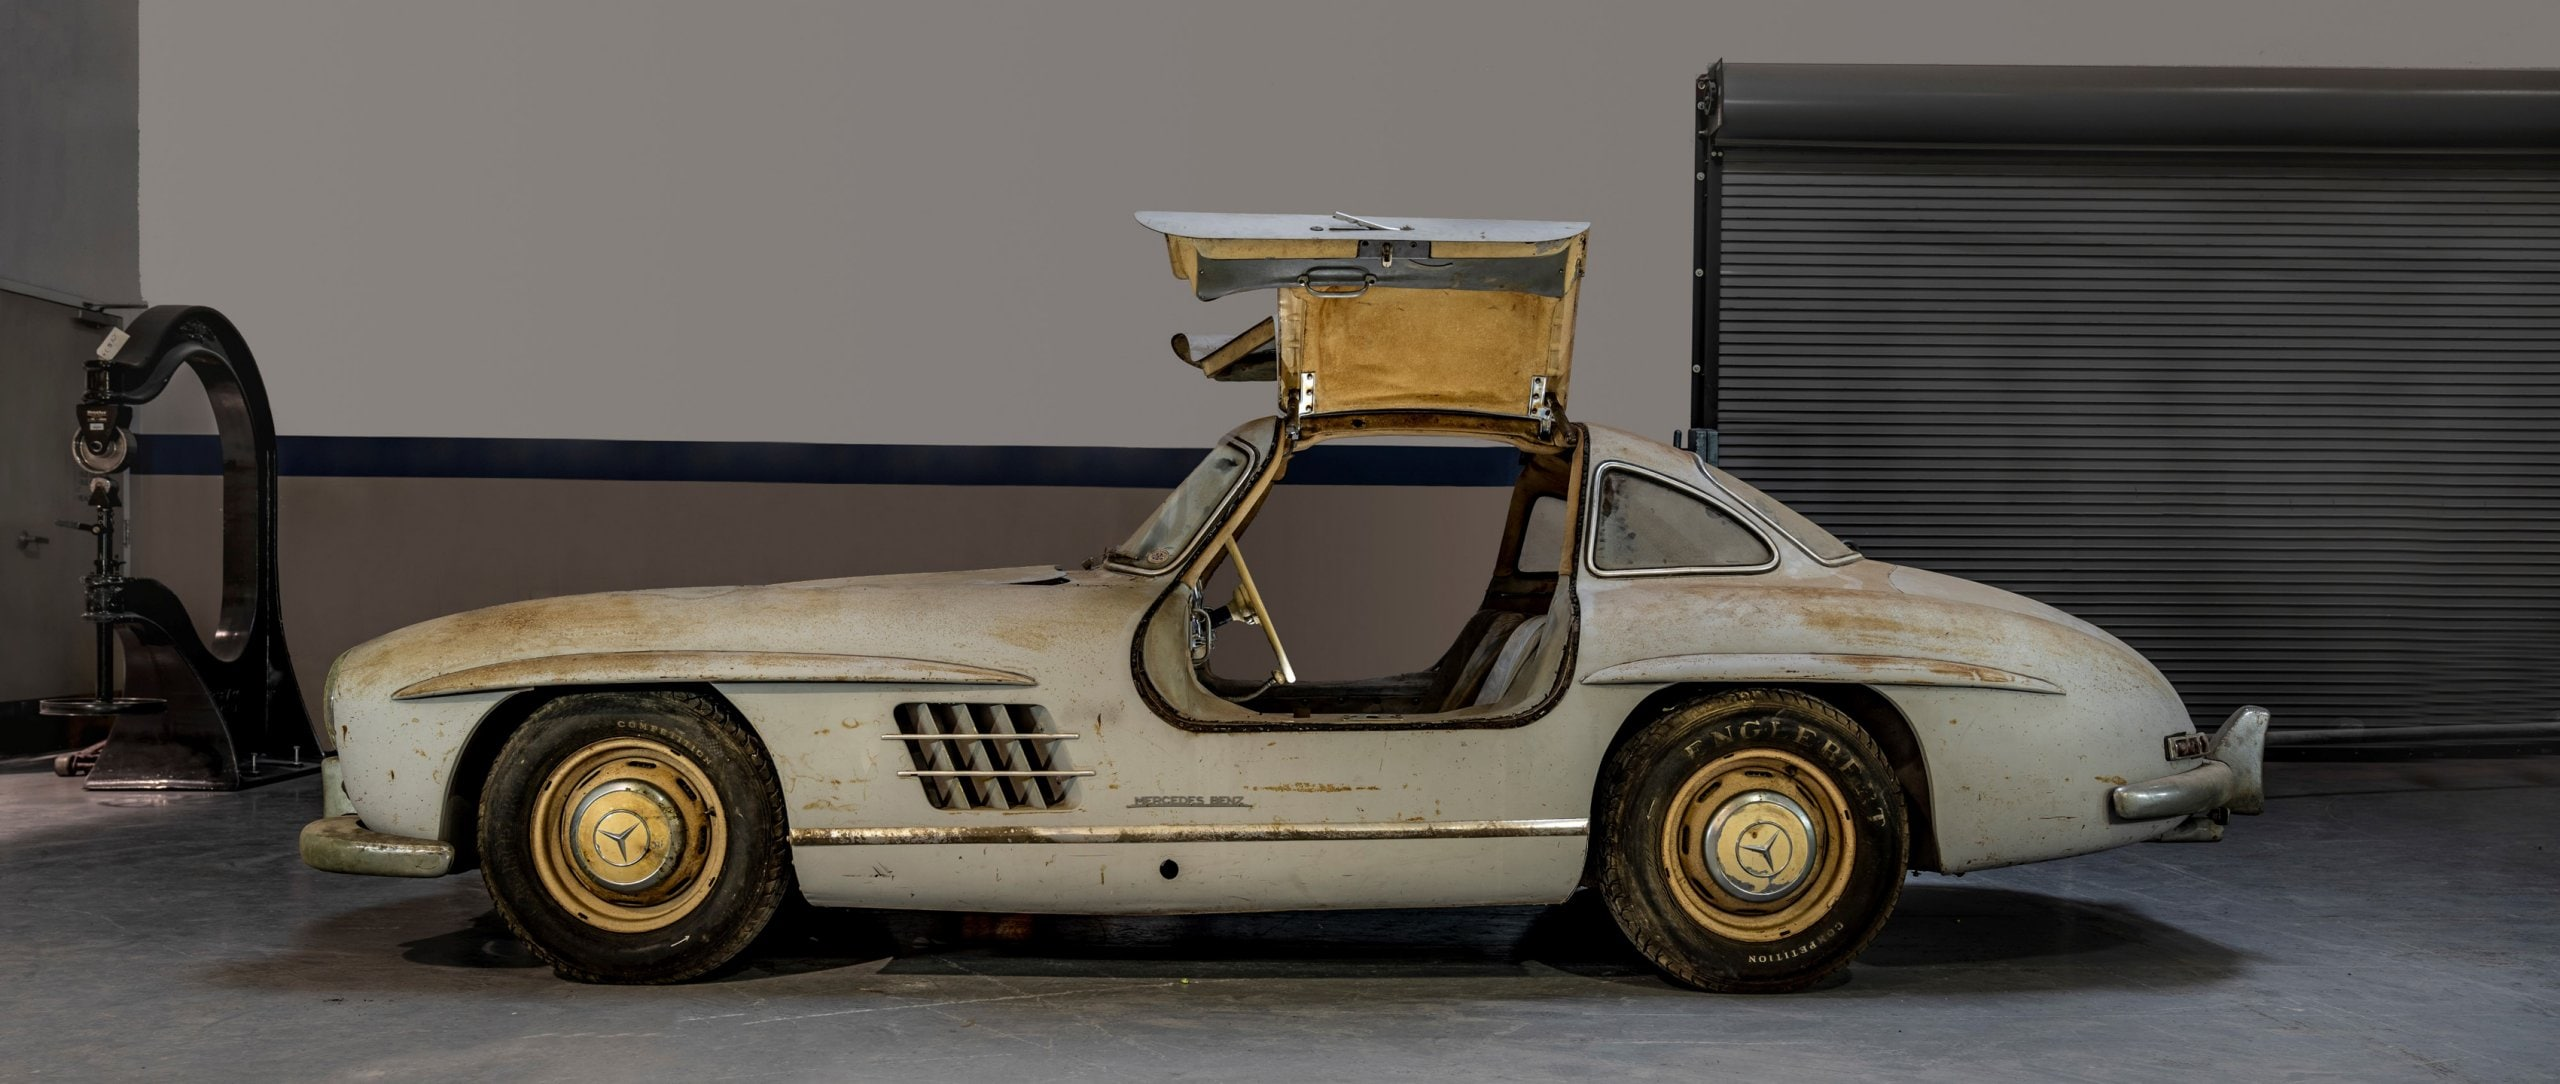 "Mercedes-Benz 300 SL ""Gullwing"" (W 198), chassis number 43, in ""barn find"" condition."